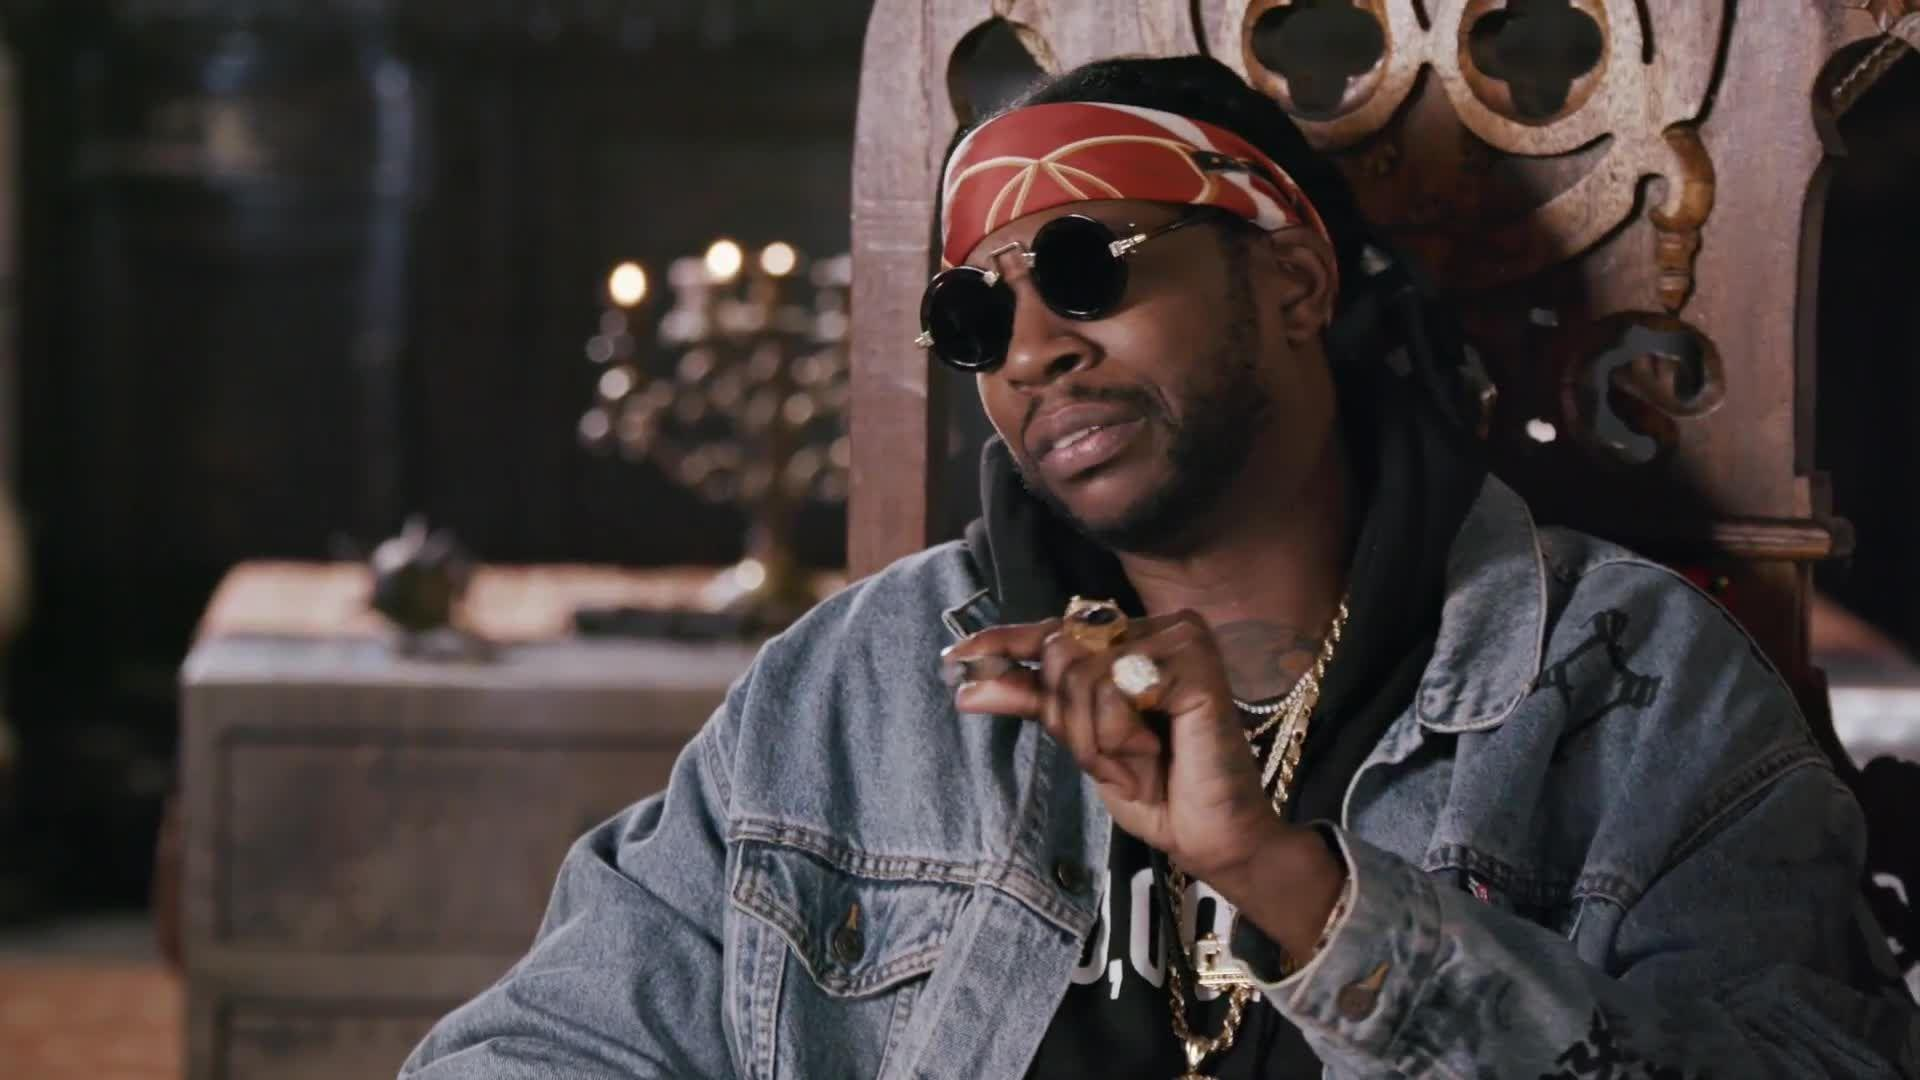 Most Expensivest Shit: 2 Chainz Gets High with $500k of Bongs and Dabs